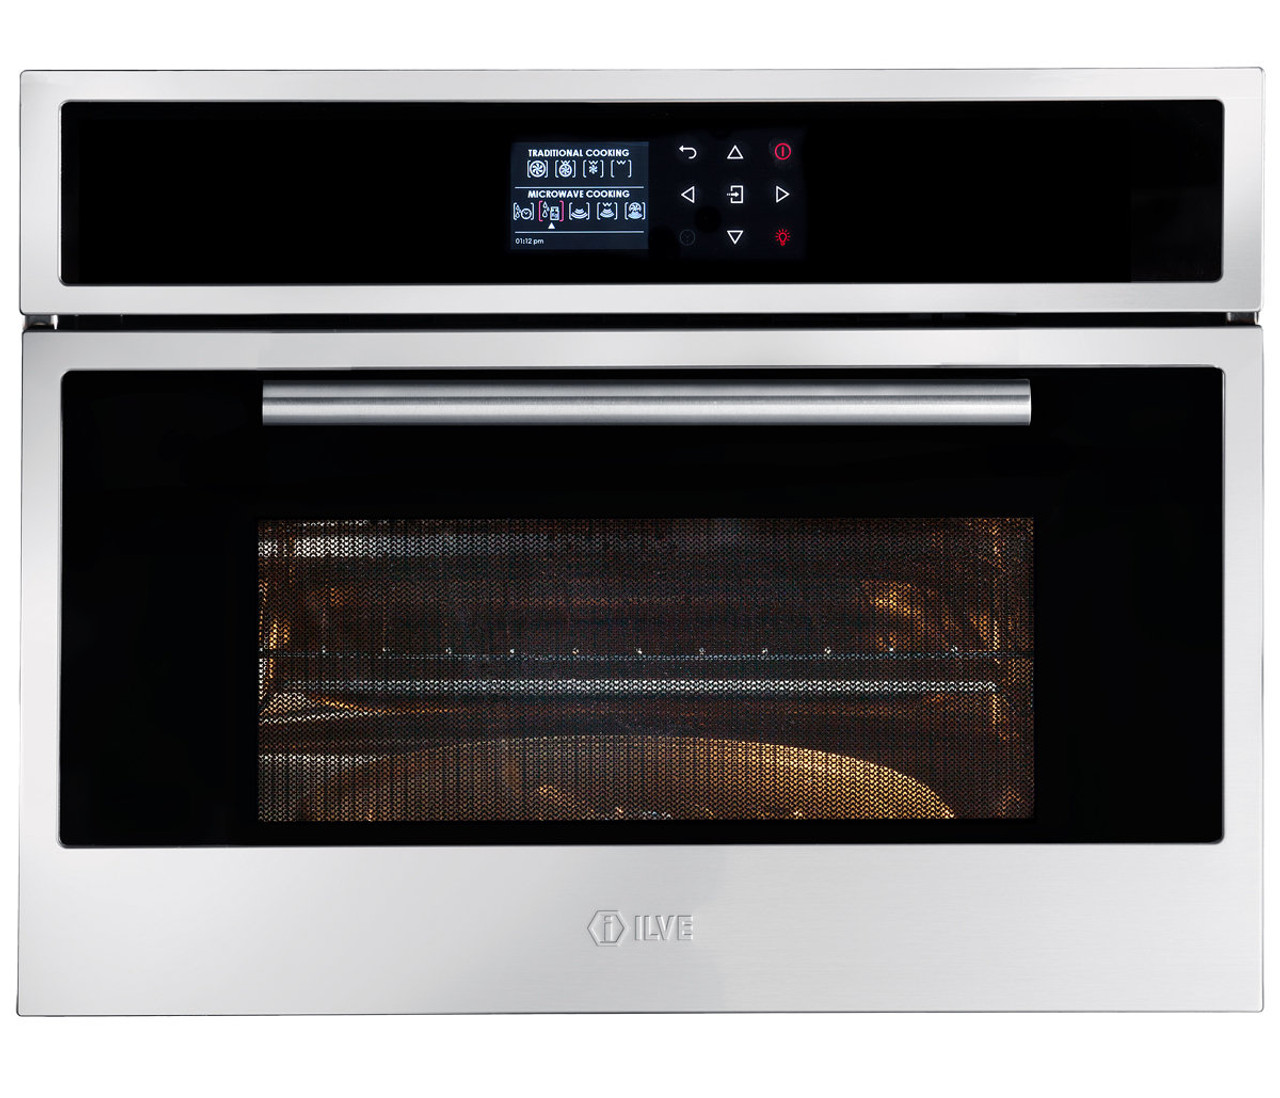 ilcm45x 60cm multifunction combi microwave oven stainless steel